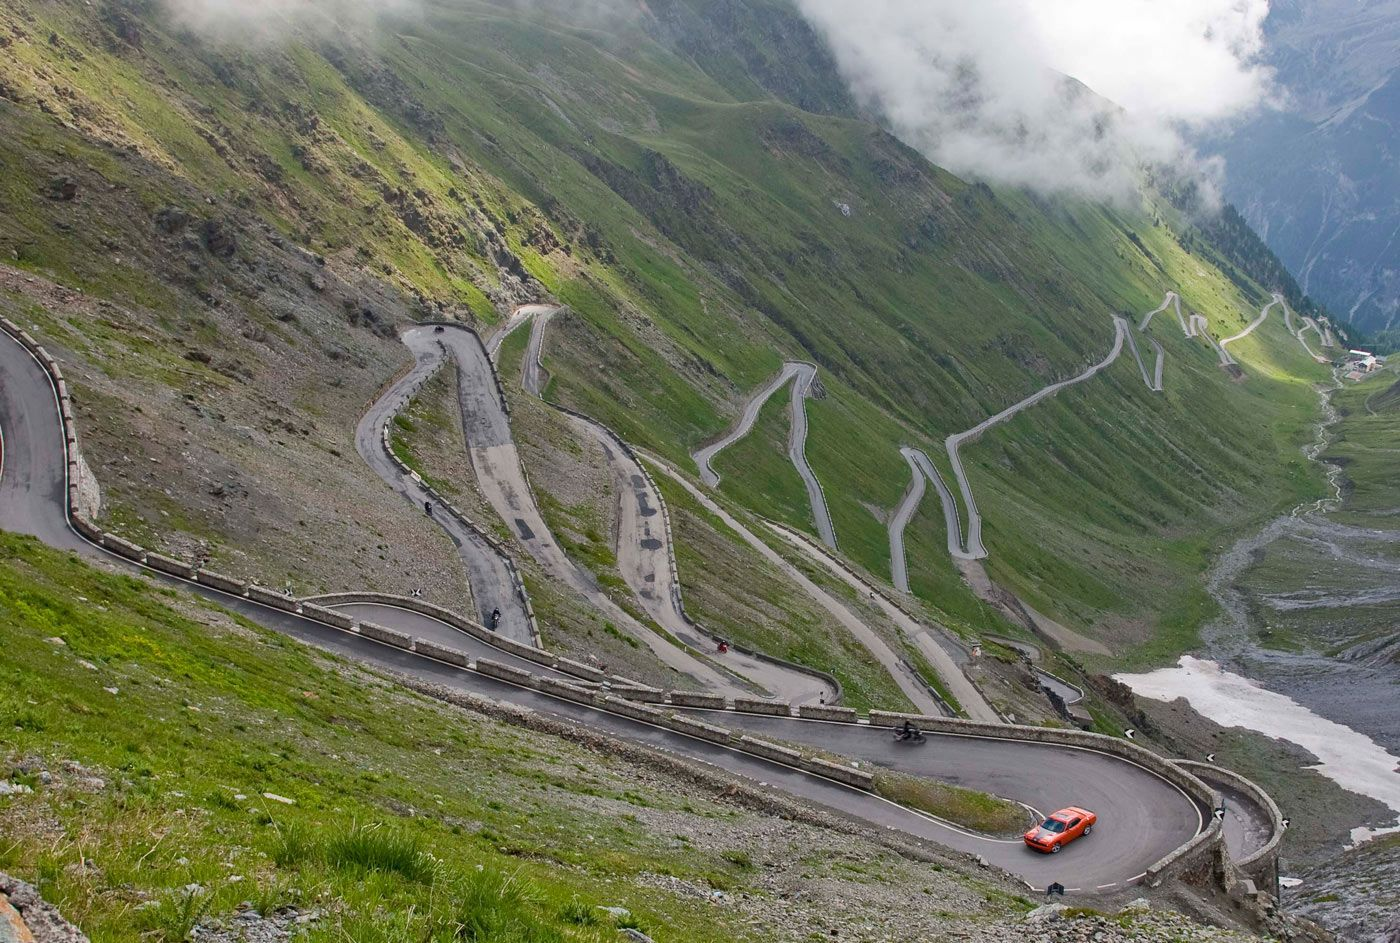 http://www.blogoftheworld.com/wp-content/uploads/2013/09/The-Stelvio-Pass-Italy1.jpg